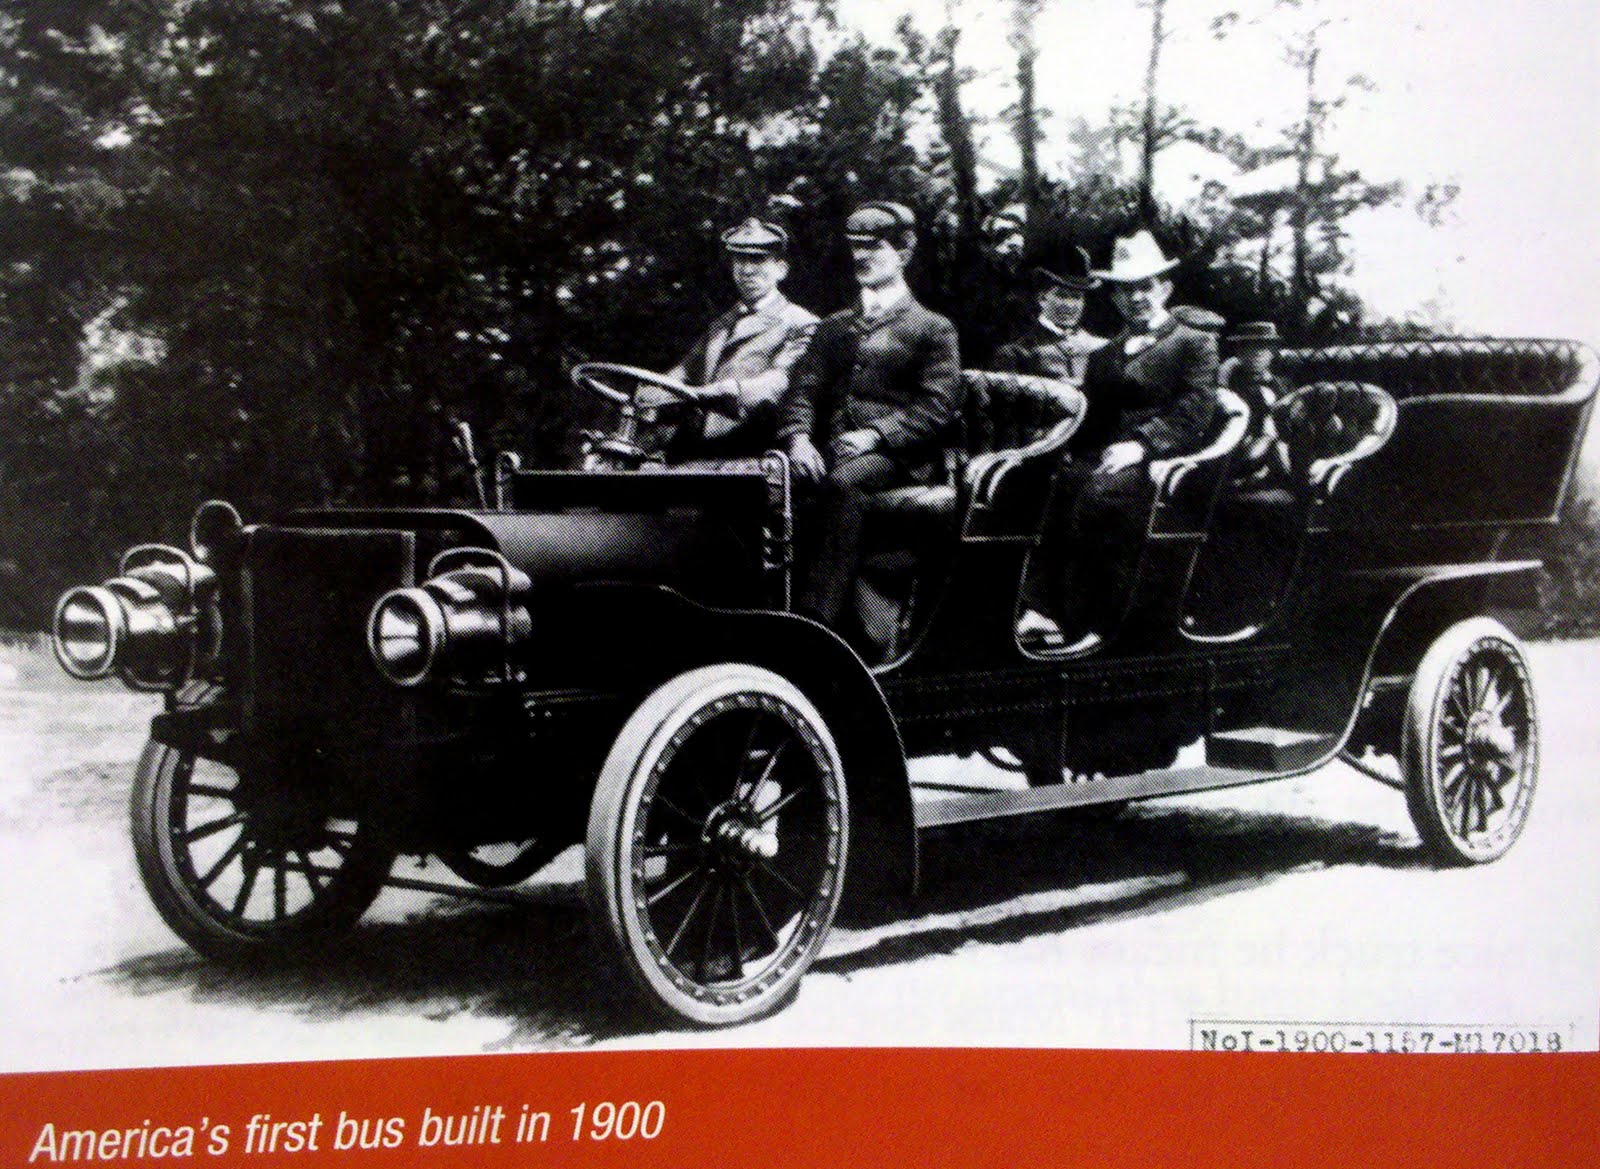 Just A Car Guy: The first bus in America, was built by Mack in 1900